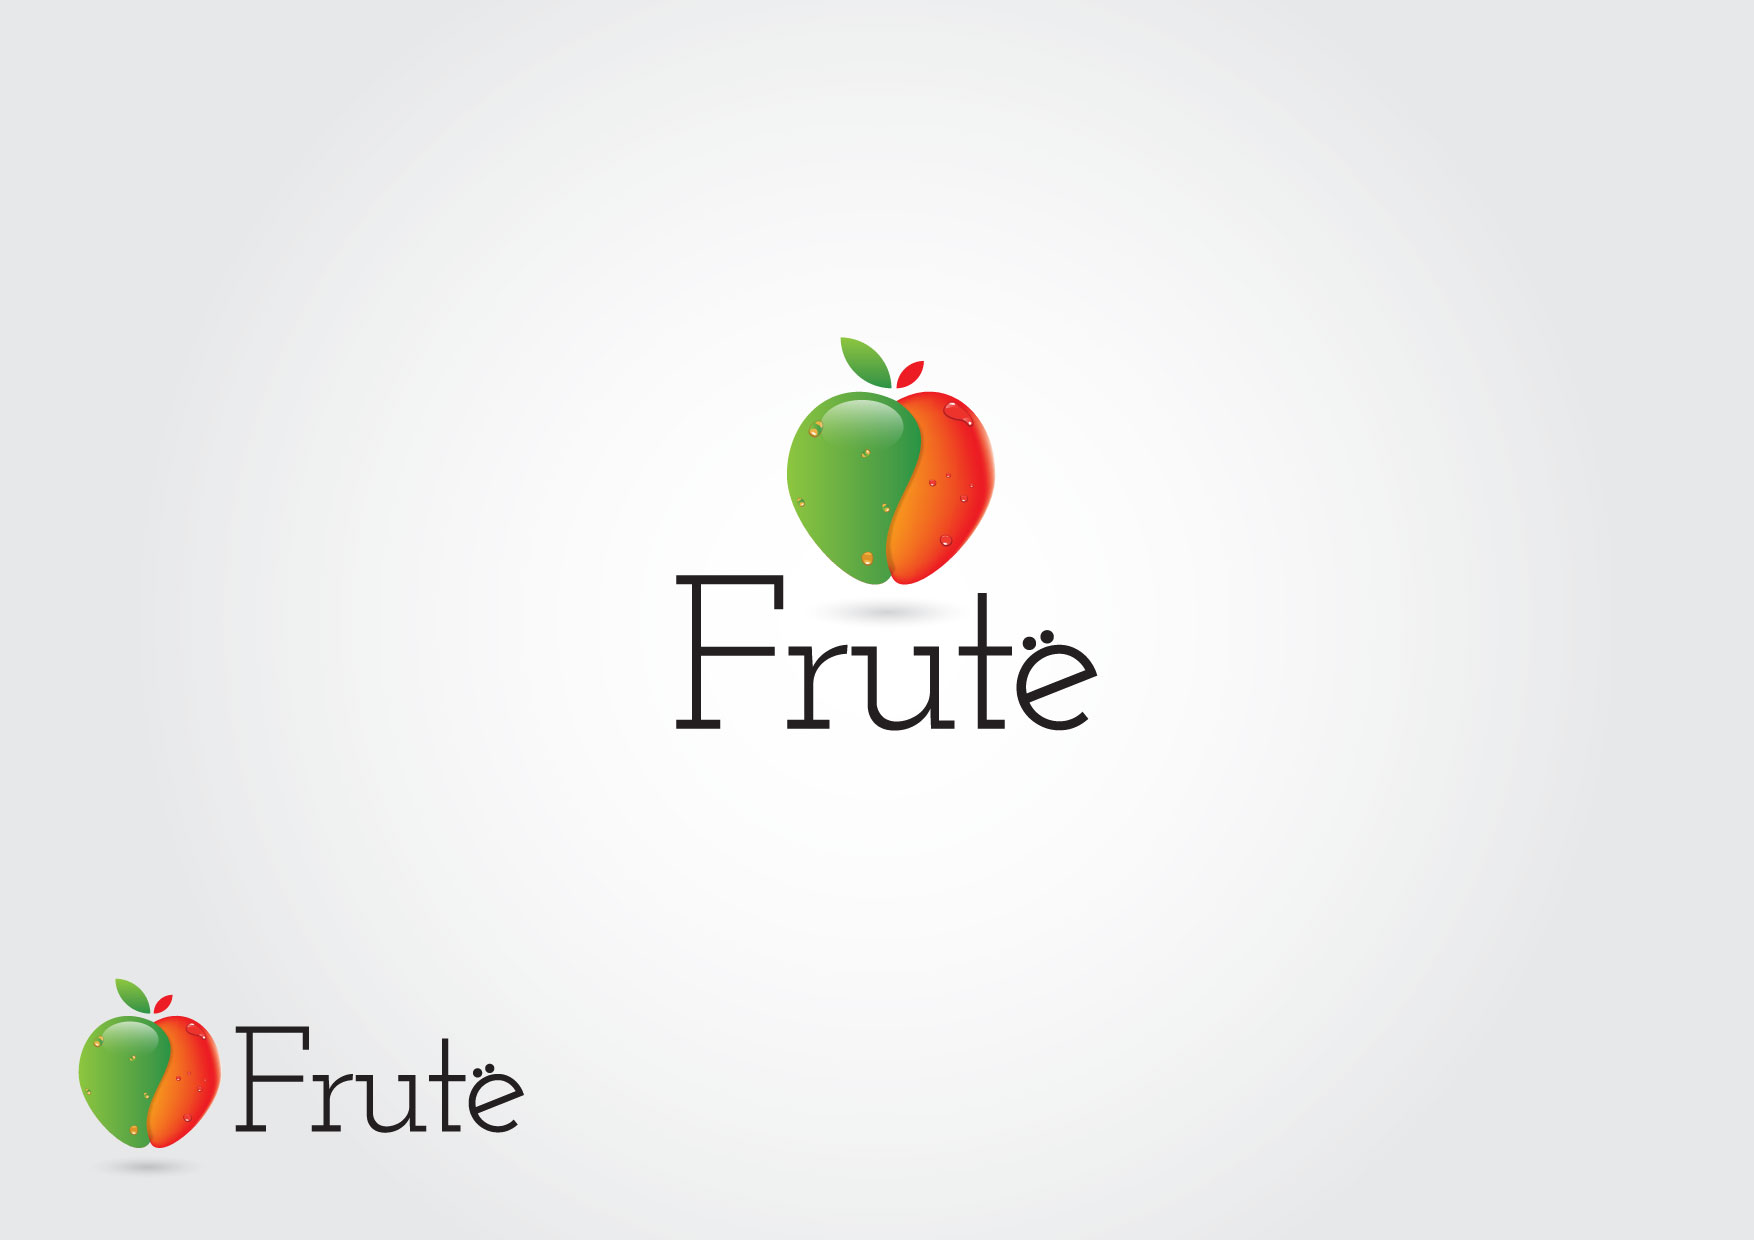 Logo Design by Dit L Pambudi - Entry No. 97 in the Logo Design Contest Imaginative Logo Design for Fruté.